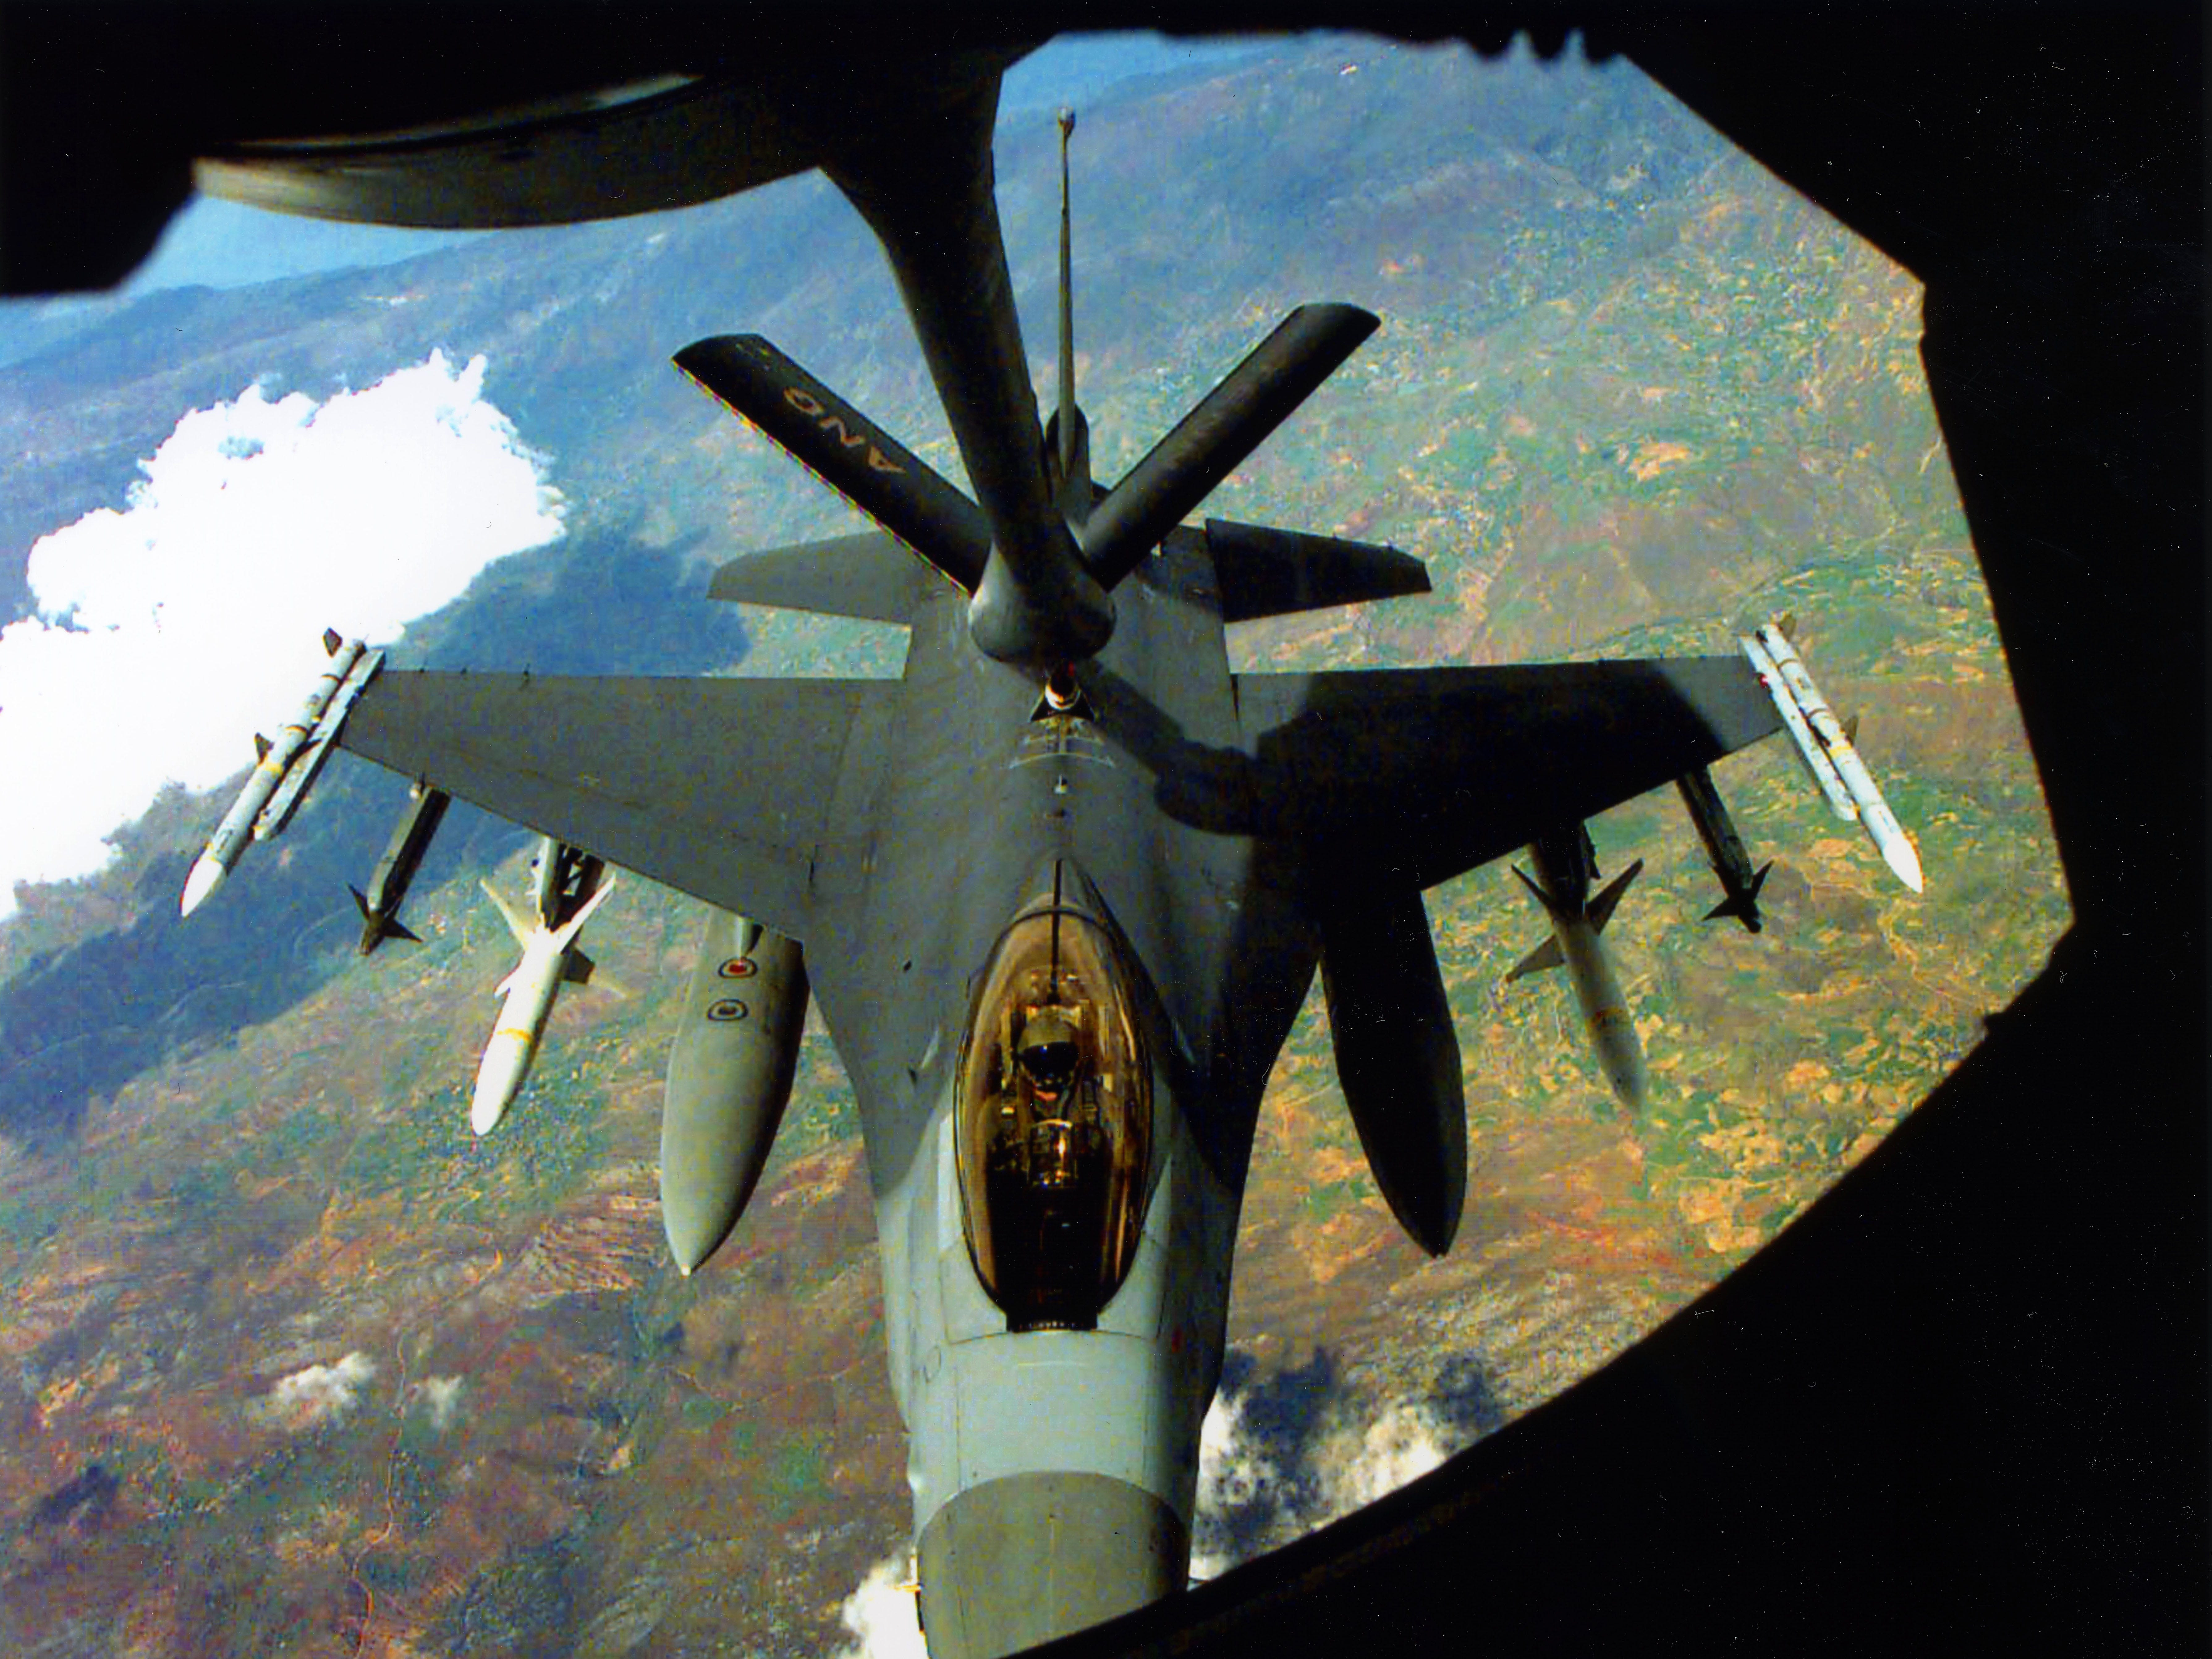 An Air Force F-16 fully loaded with missiles, gets a fuel refill, courtesy of a Tennessee Air National Guard 134th Air Refueling Wing tanker April 28, 1999. Under the fighter's wing are, from the outside, Sidewinder and Sparrow missiles, HARM anti-radar site missiles and fuel tanks.